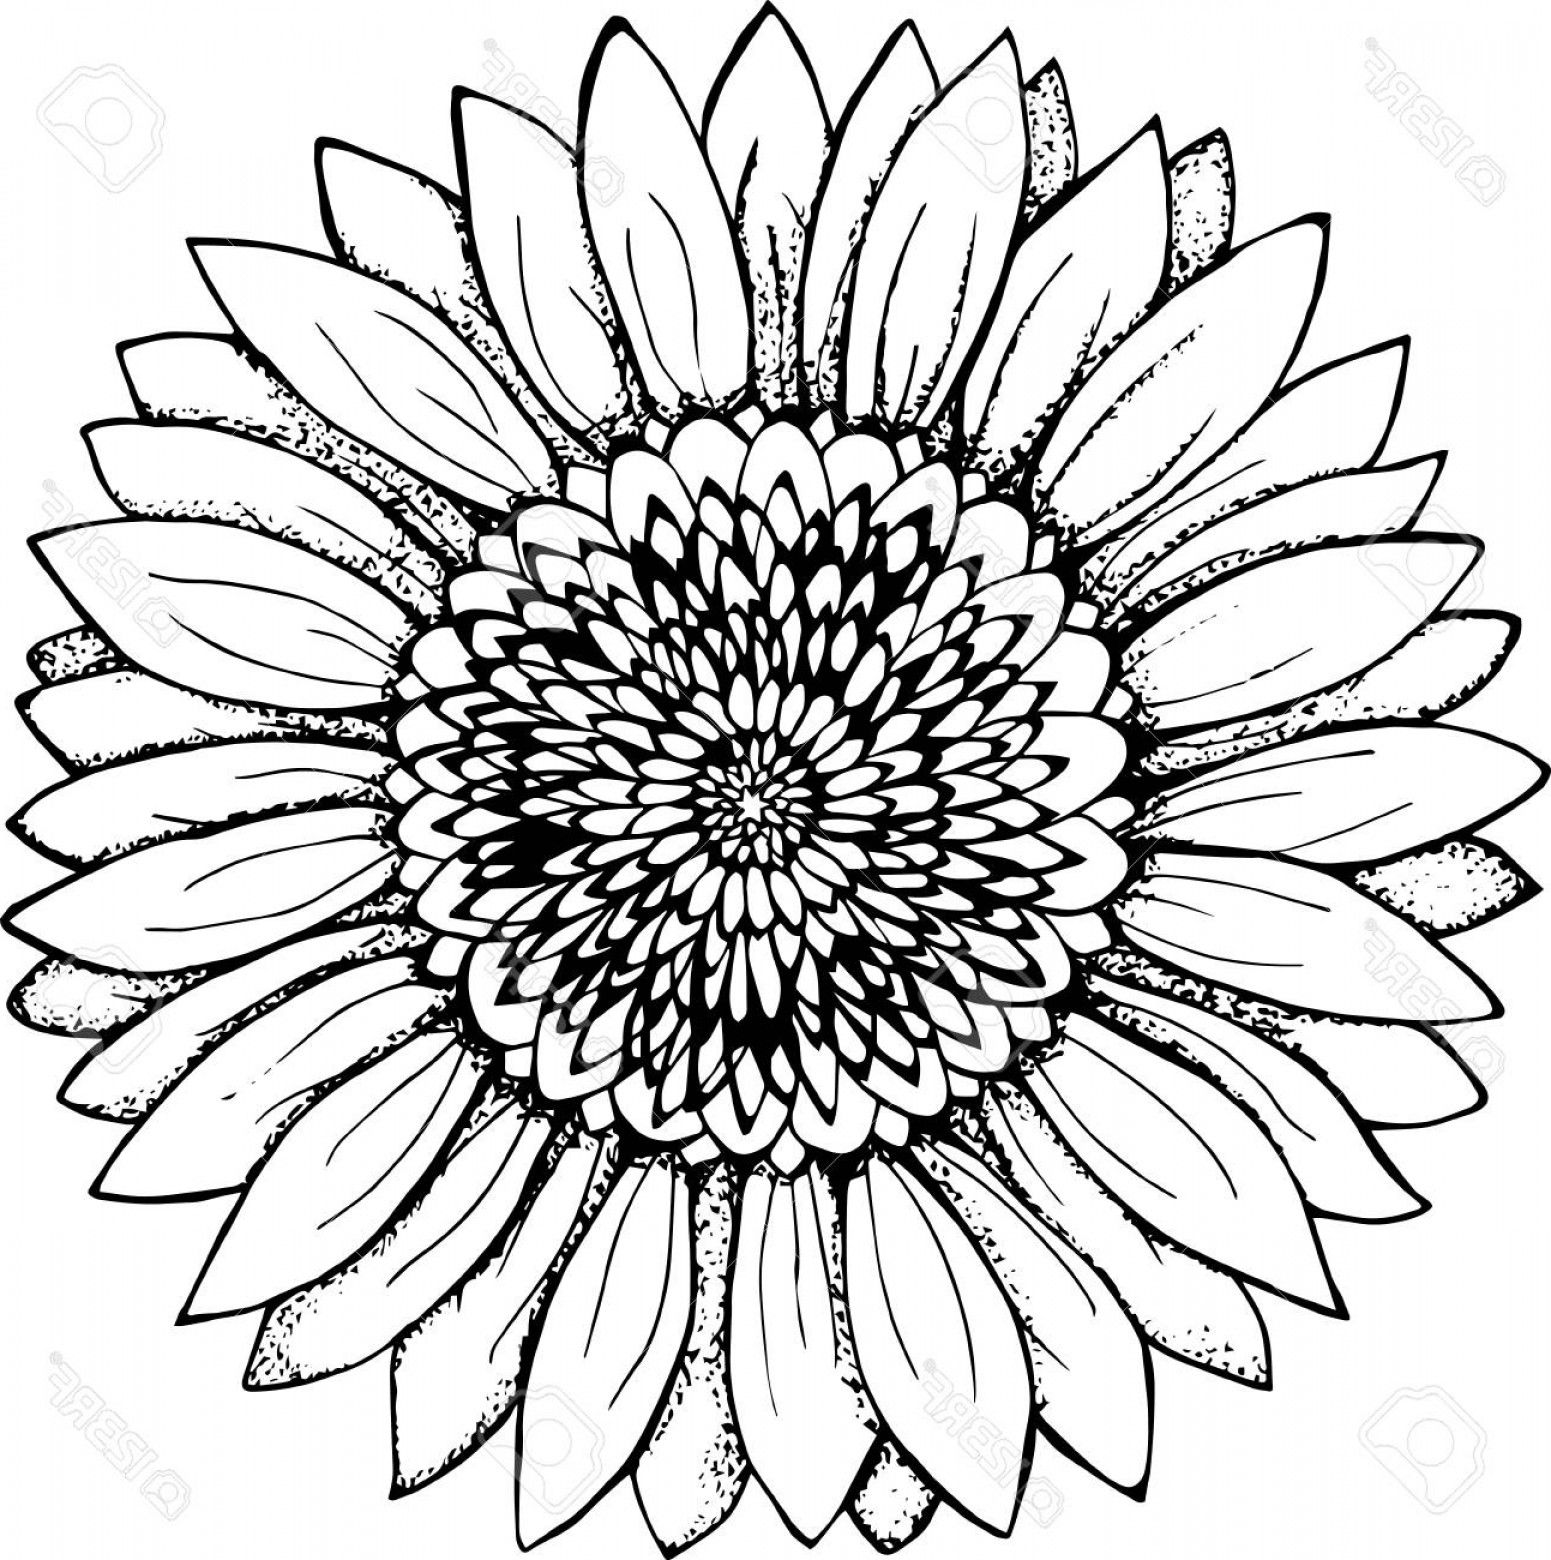 Drawn Sunflower Outline 21 1551 X 1560 Sunflower Drawing Sunflower Black And White Flower Illustration